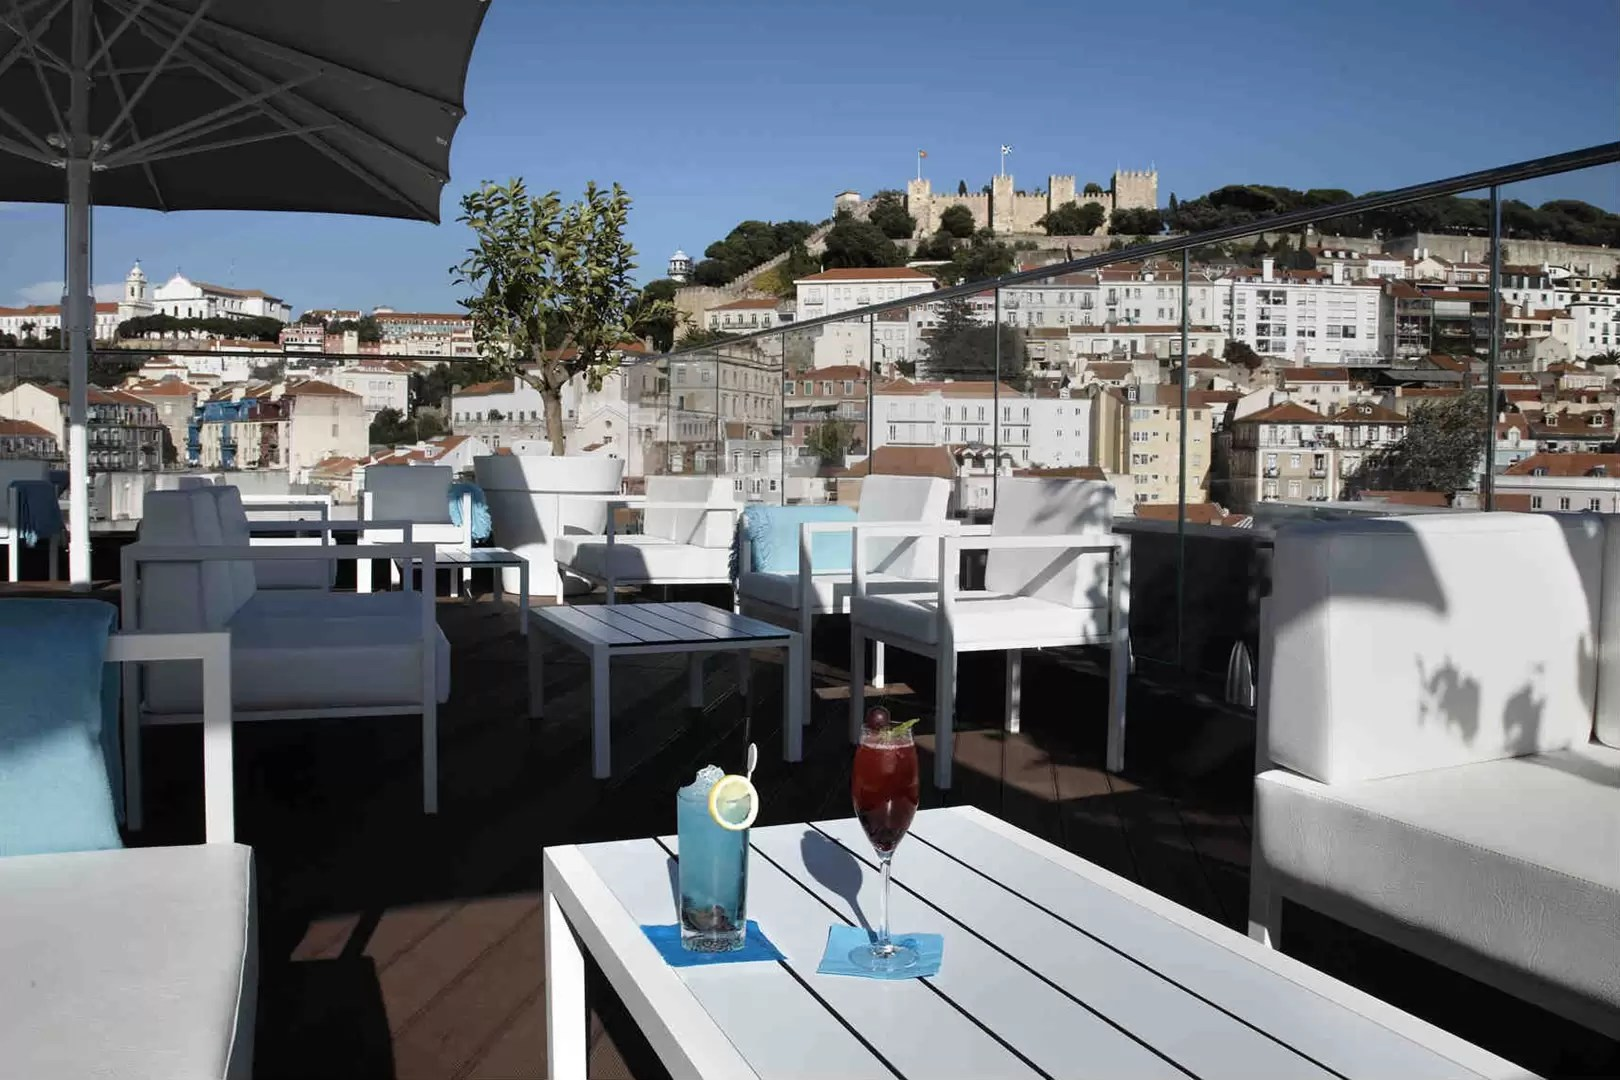 Zwembad Lissabon Rooftop Bars In Lisbon Cocktail Bars With A View Cn Traveller